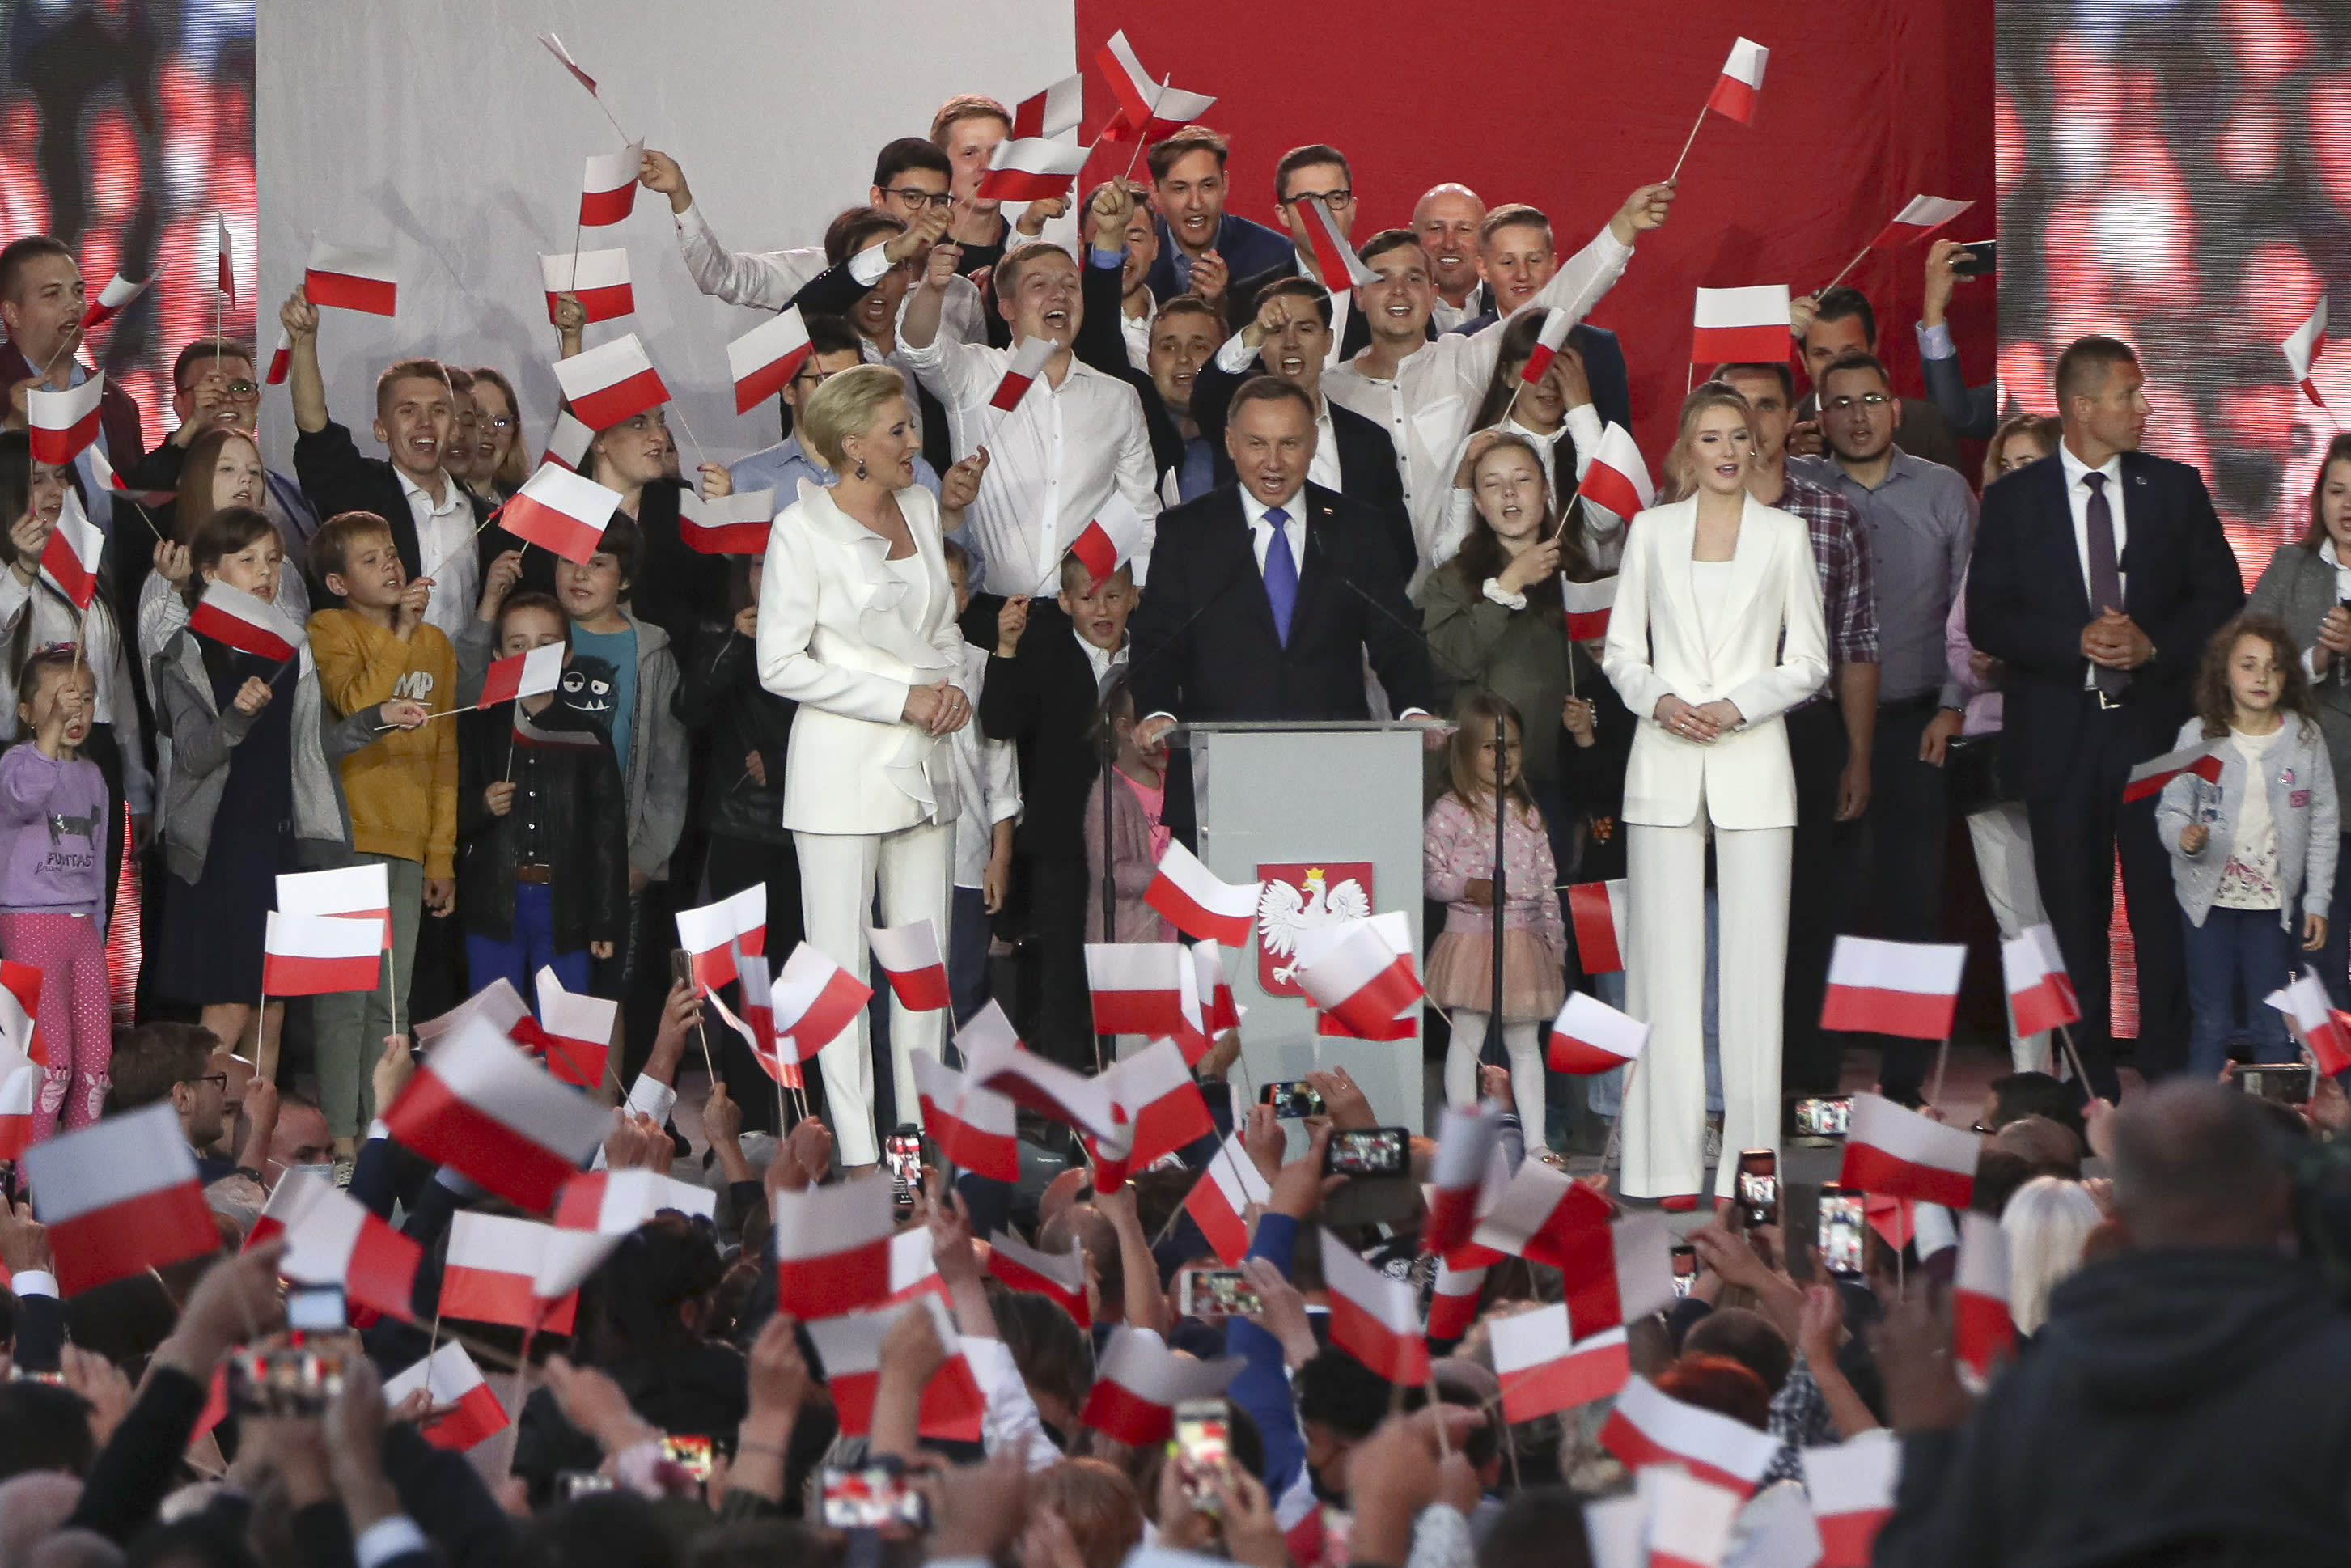 Incumbent President Andrzej Duda addresses supporters in Pultusk, Poland, Sunday, July 12, 2020. An exit poll in Poland's presidential runoff election shows a tight race that is too close to call between the conservative incumbent, Andrzej Duda, and the liberal Warsaw mayor, Rafal Trzaskowski. (AP Photo/Czarek Sokolowski)